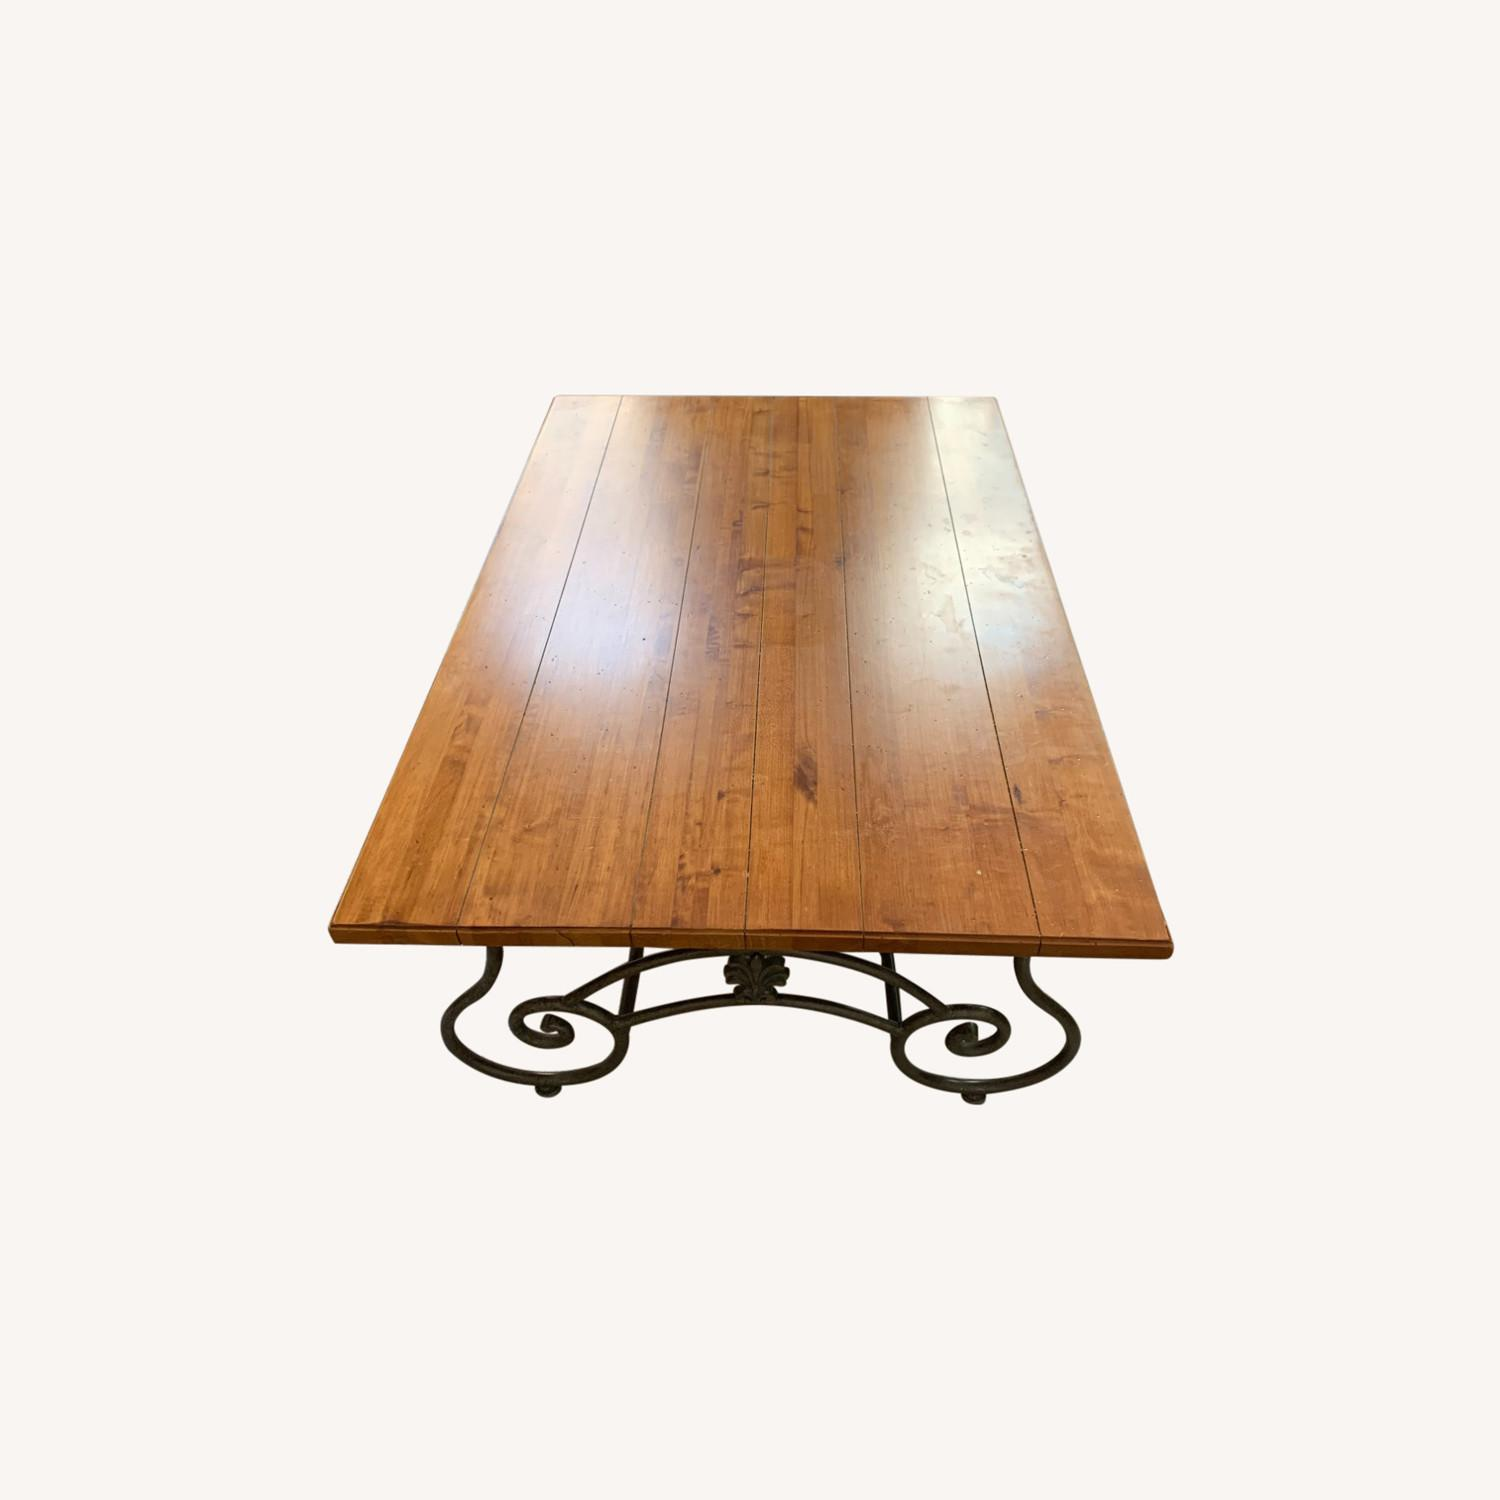 Ethan Allen Coffee Table - image-0